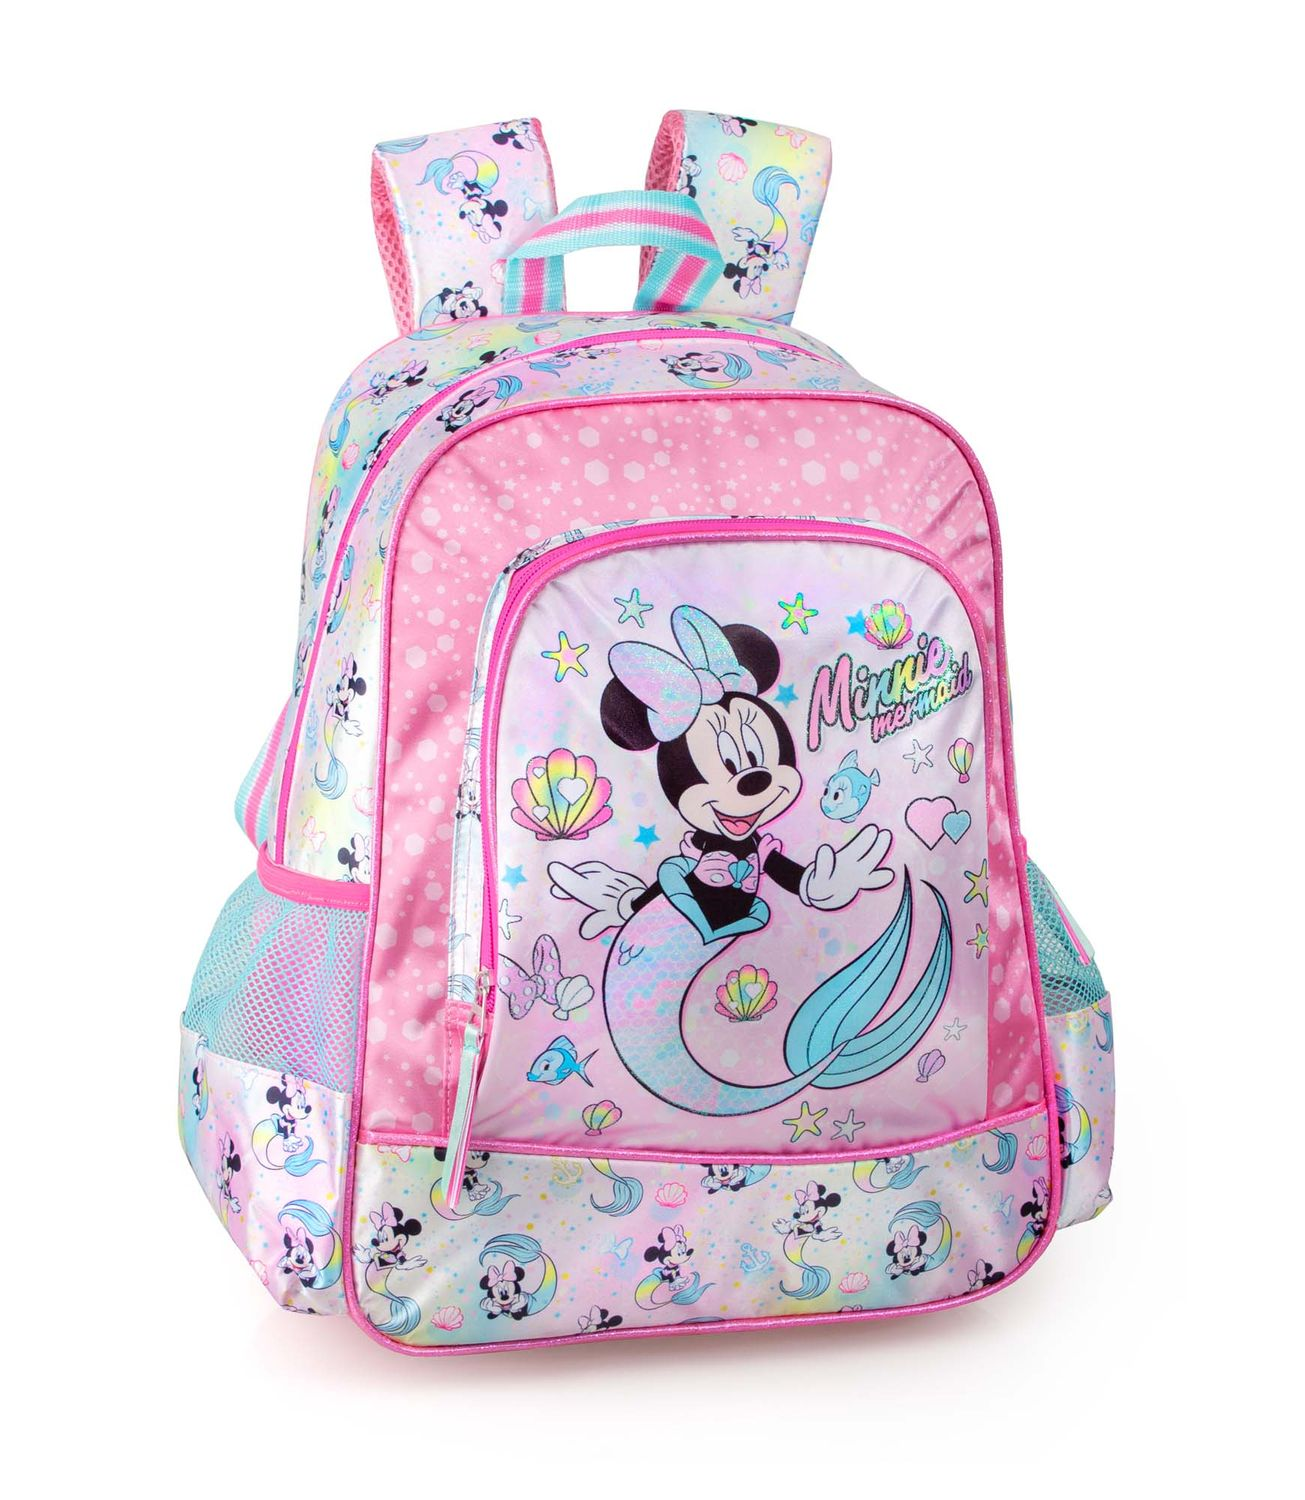 Backpack MINNIE MOUSE MERMAID Large – image 1